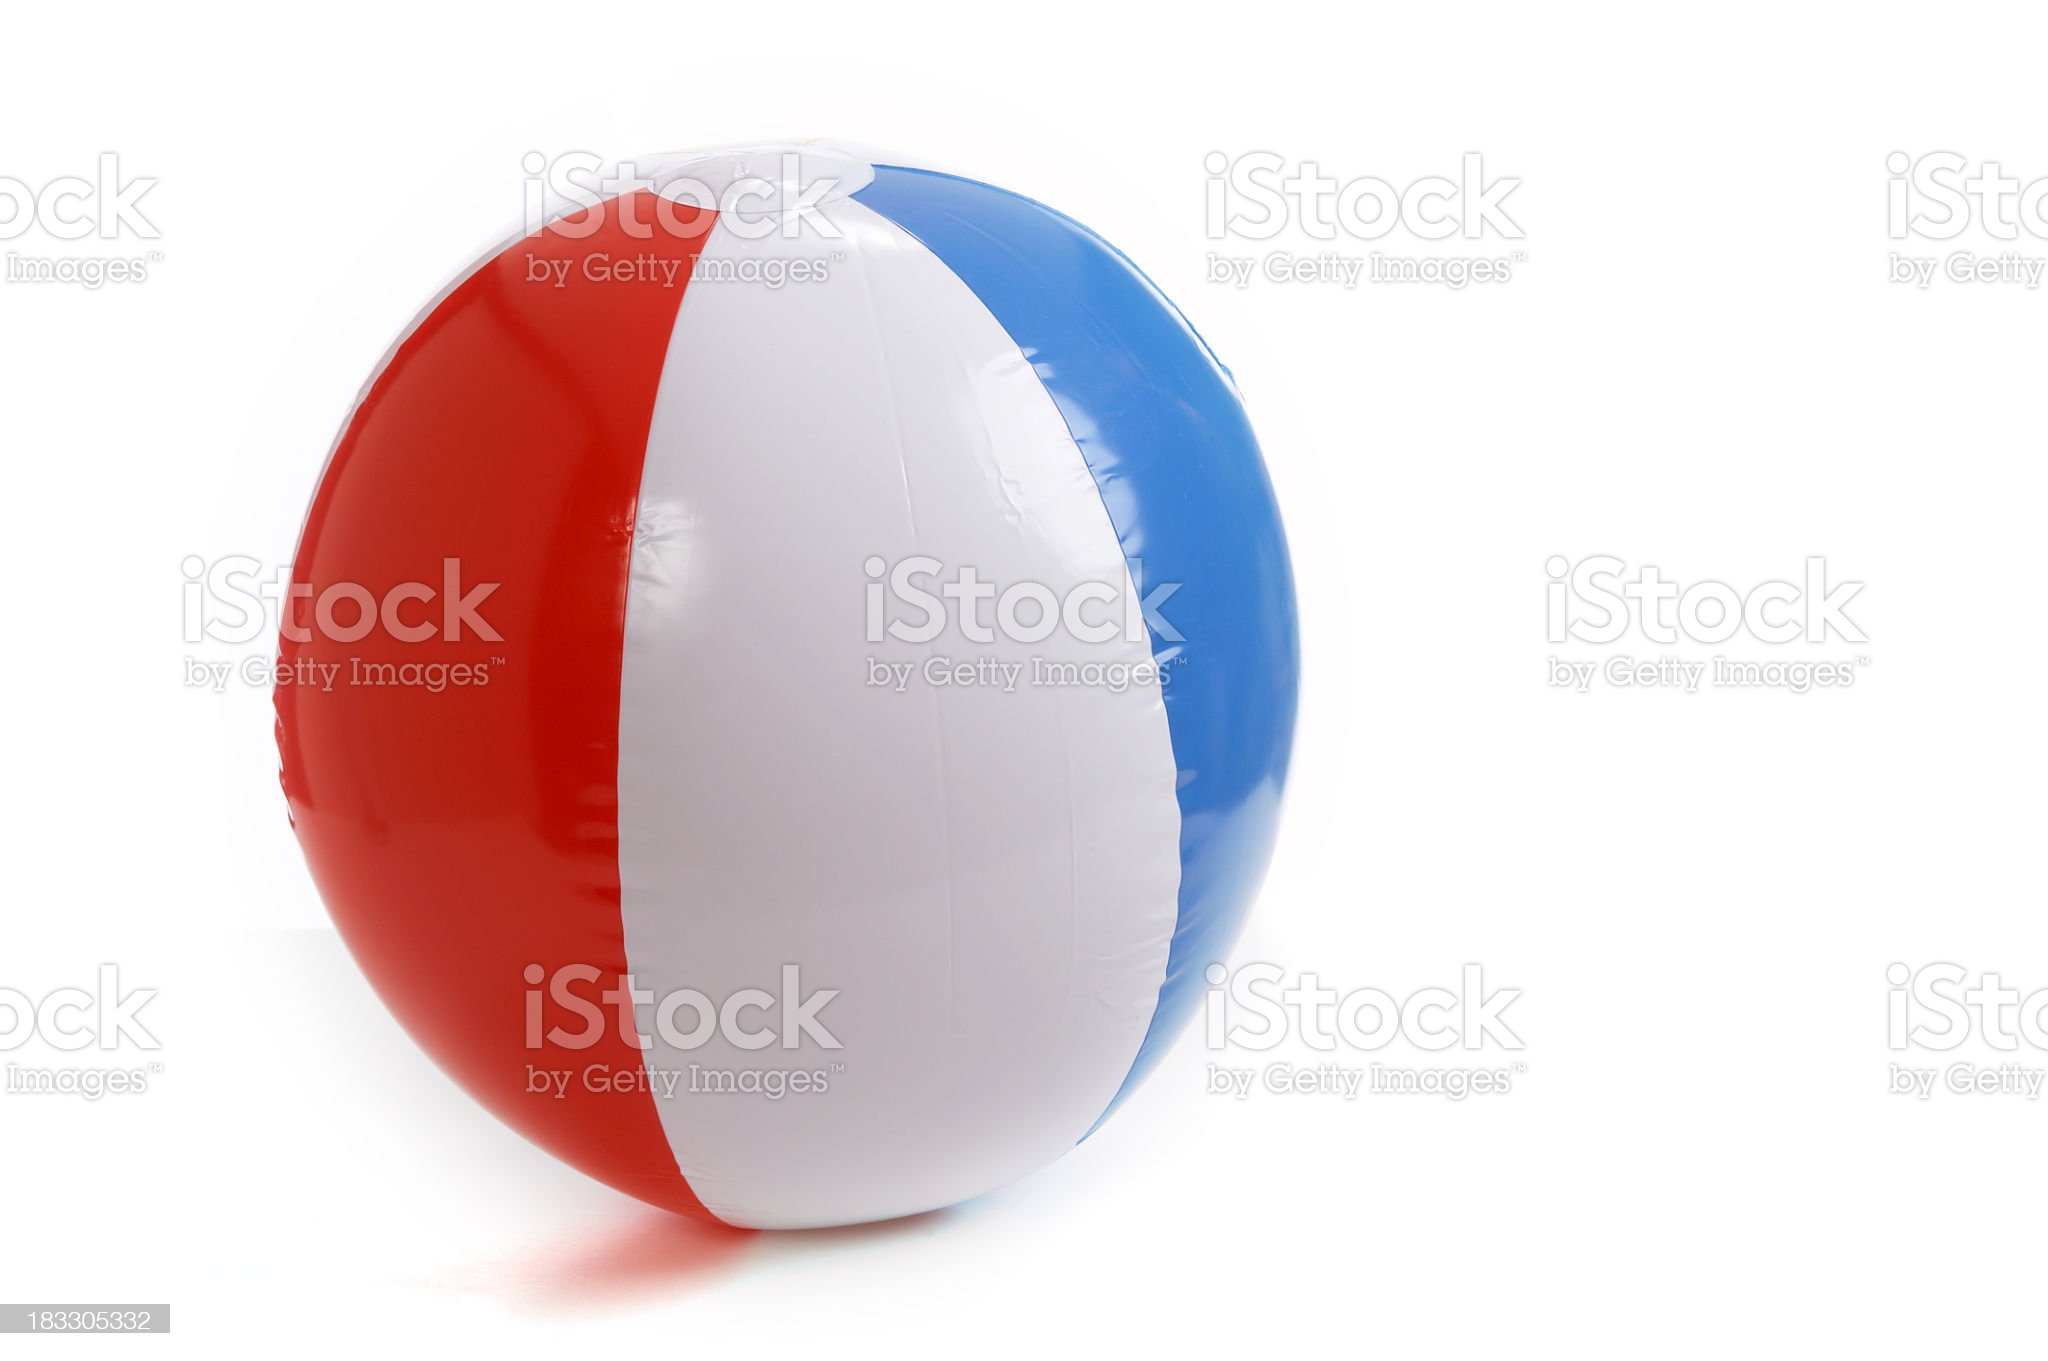 A blue red and white beach ball royalty-free stock photo